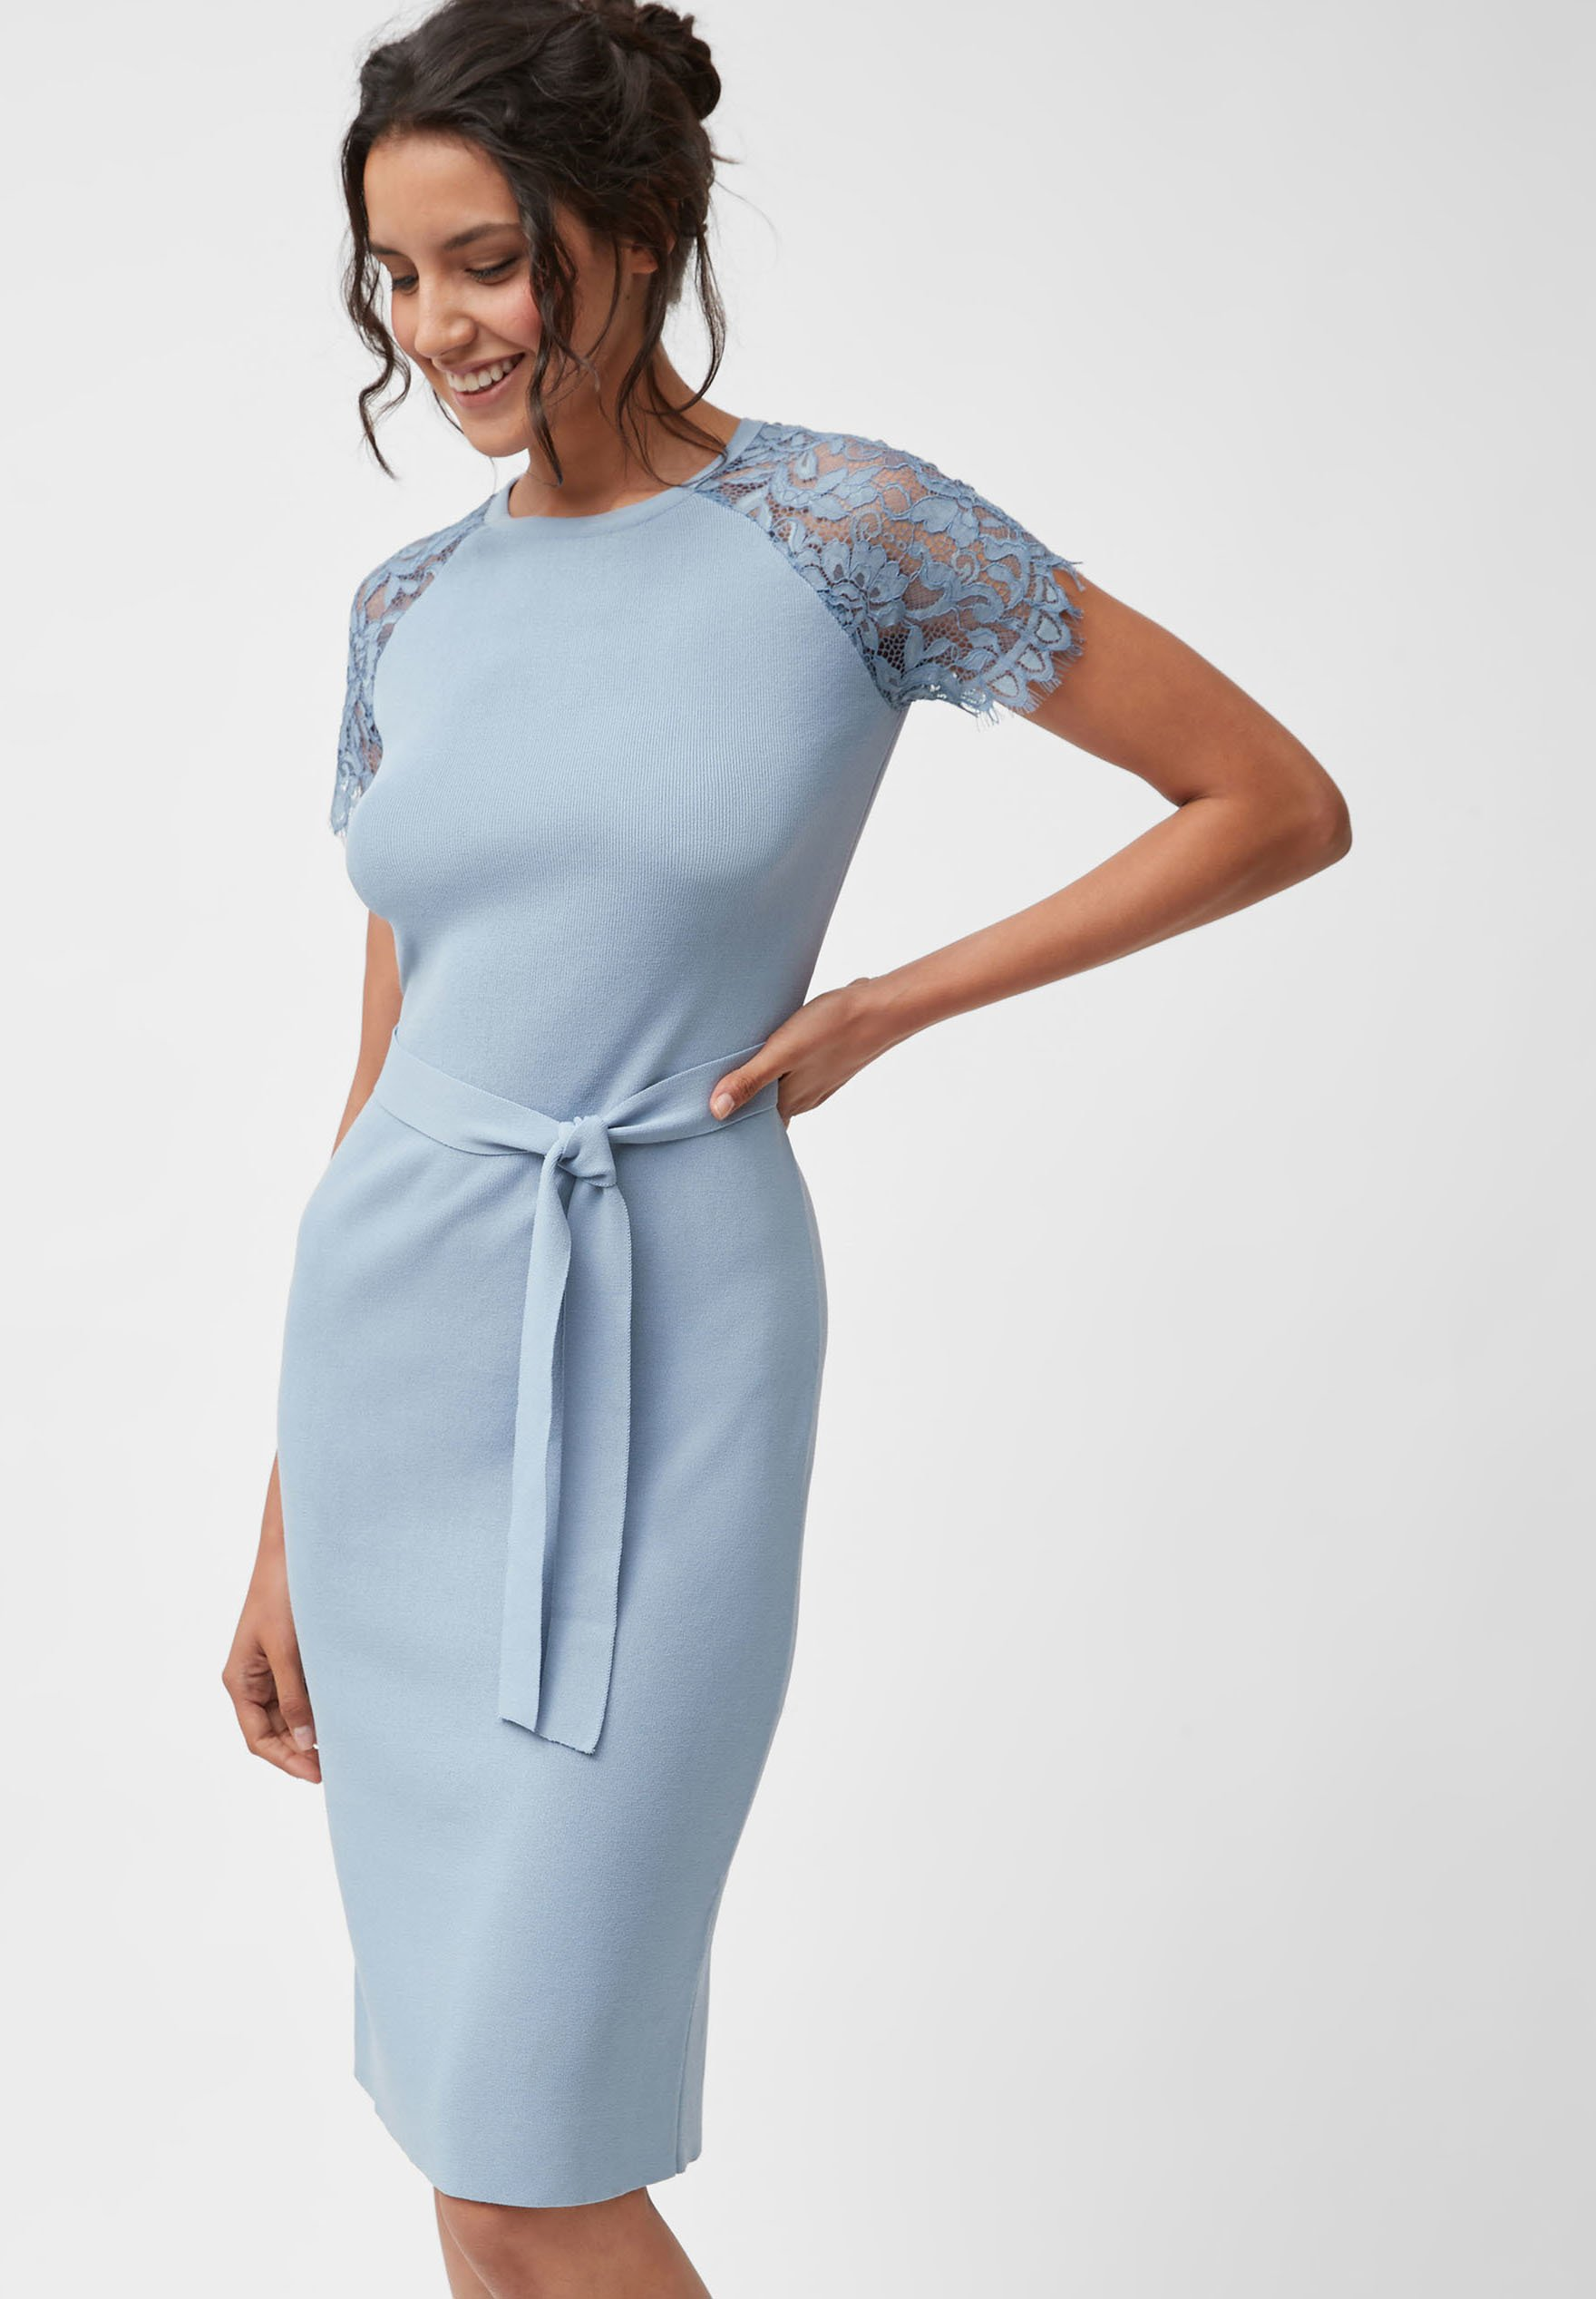 next blue lace cap sleeve dress - cocktailkleid/festliches